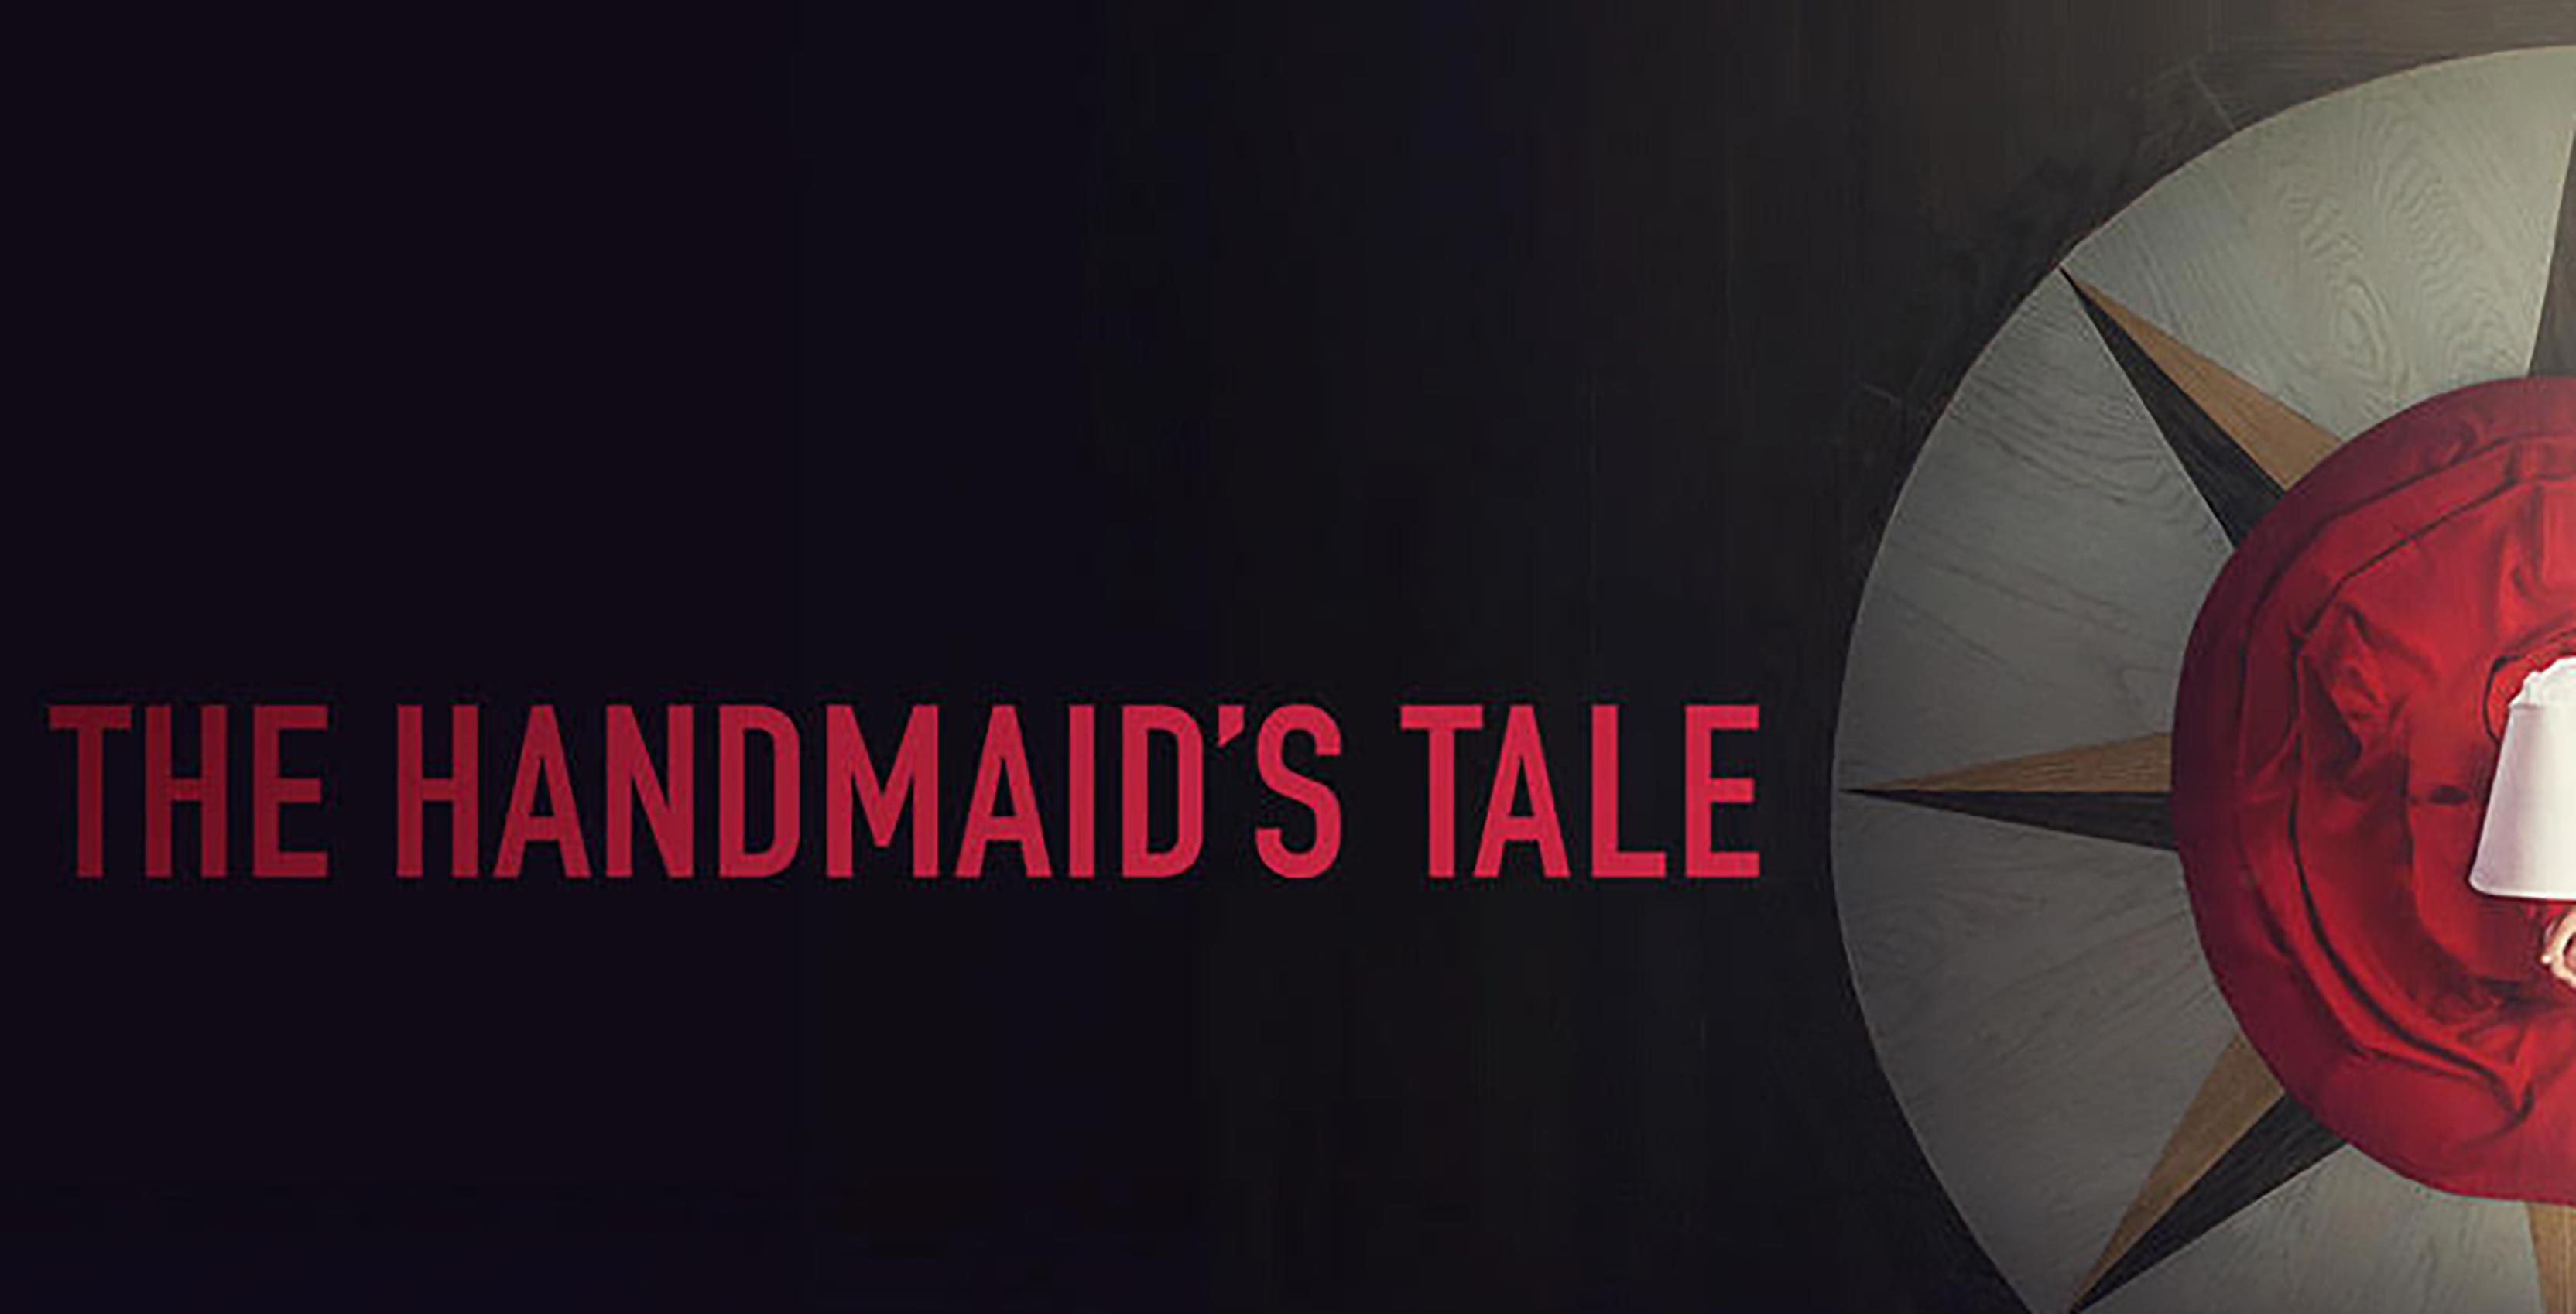 The Handmaid's Tale Wallpapers